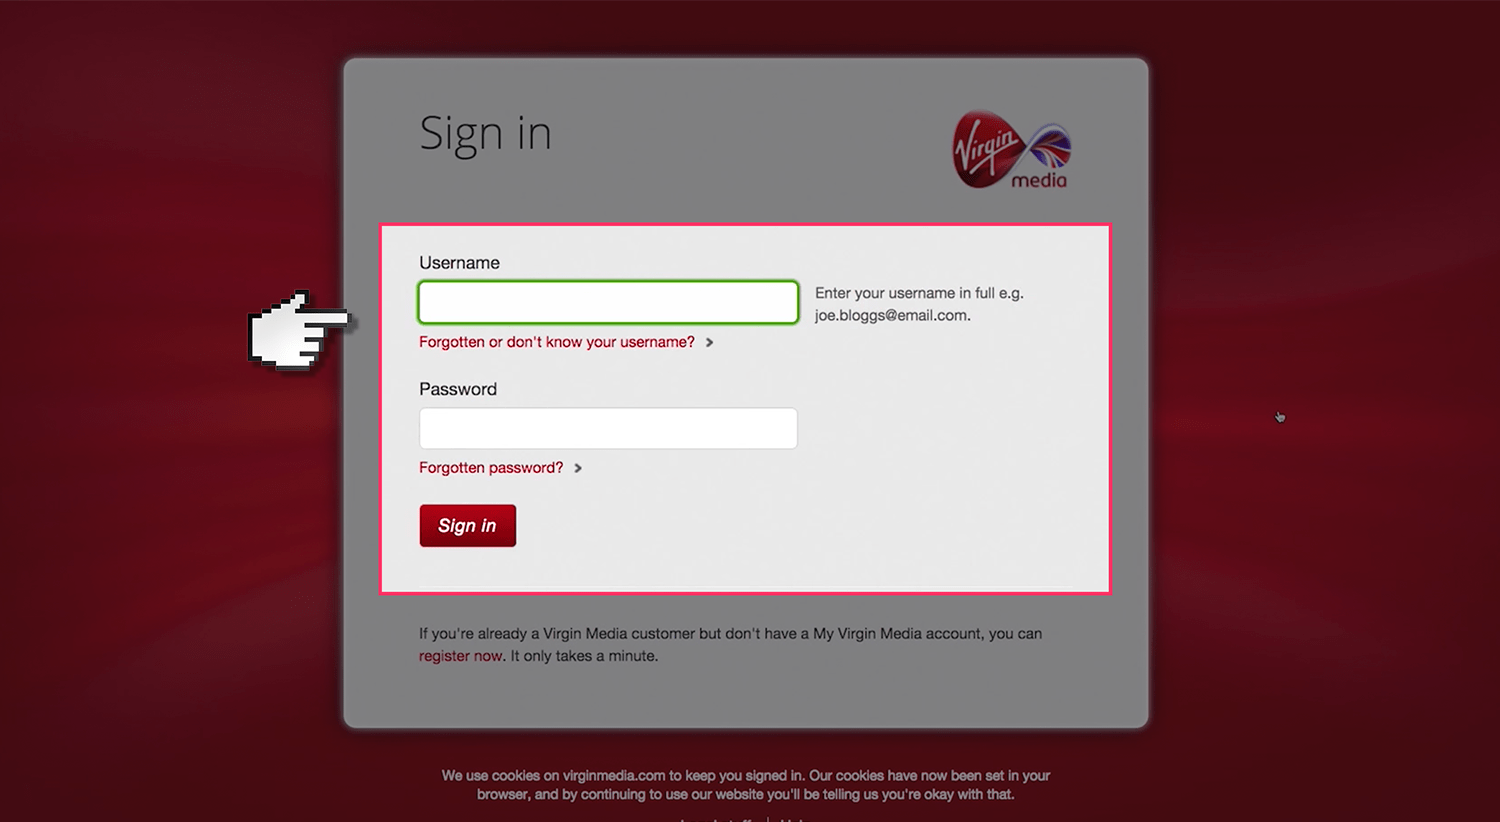 Seems Virgin media email addresses curious topic